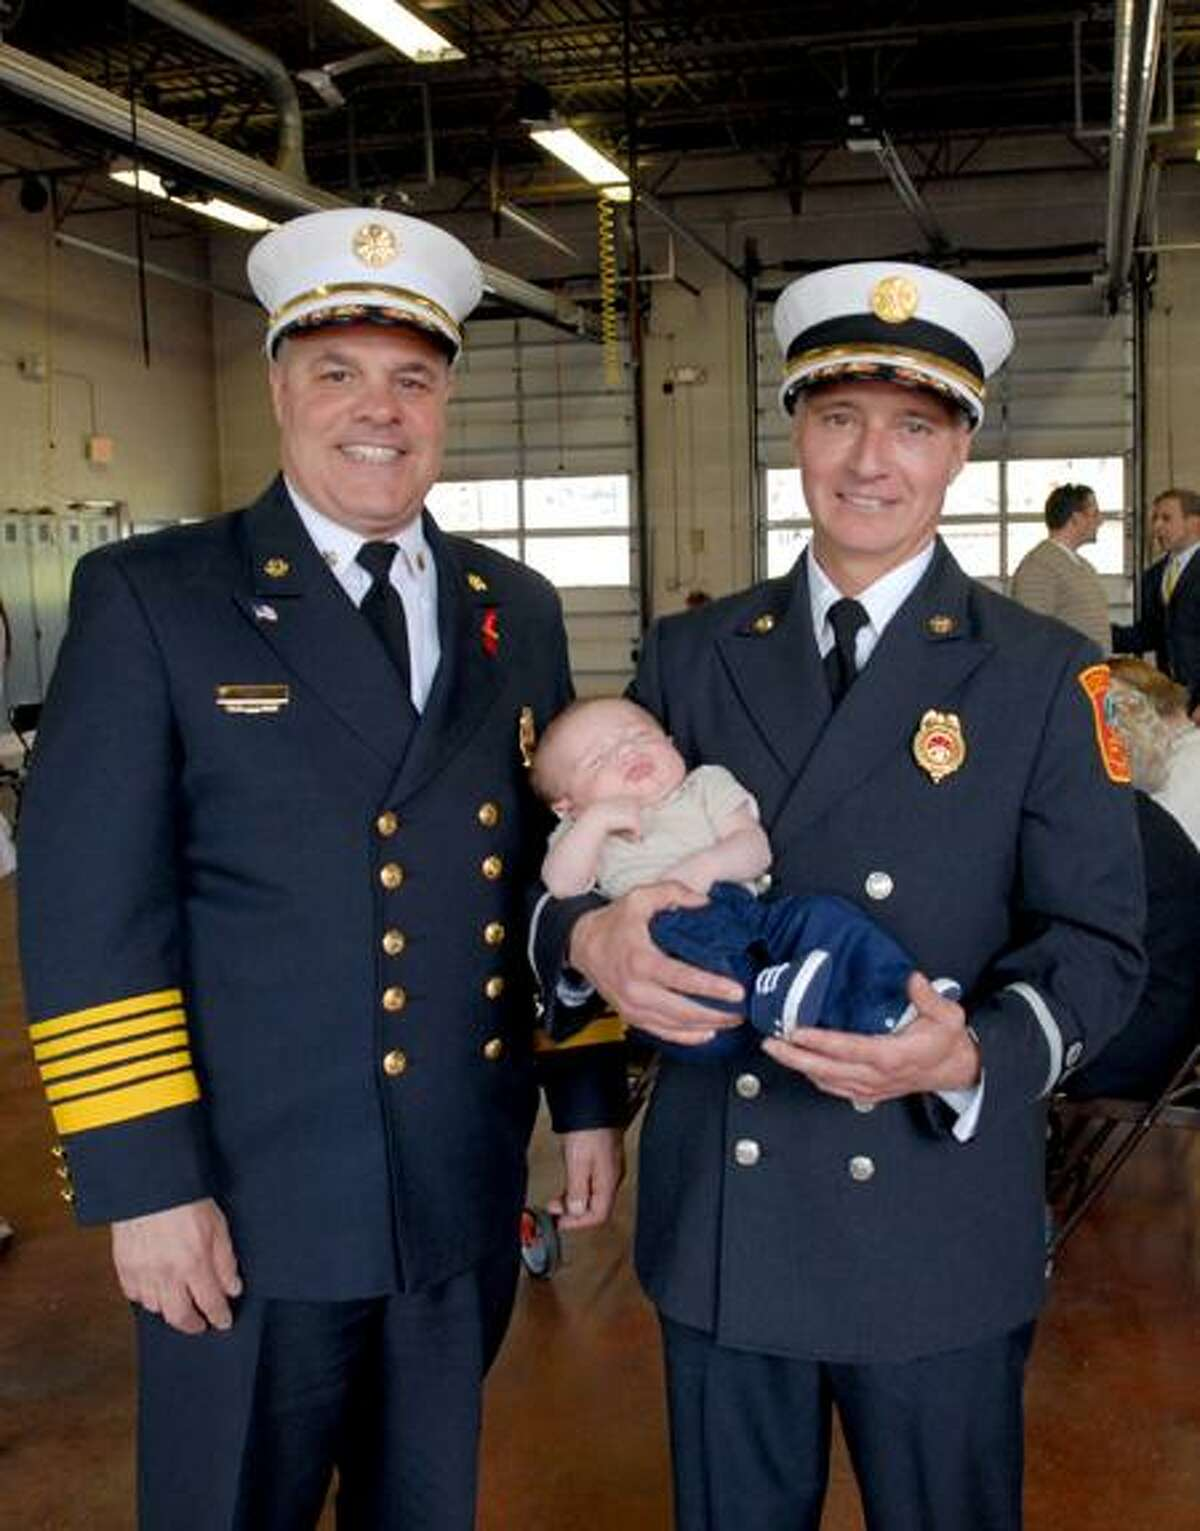 David J. Macarelli holds his 10-week-old son, Grayson, at the North Haven Fire Commission meeting, where he became the new deputy fire chief. At left is Fire Chief Vincent Landisio. Caroline Kowalczyk/Register